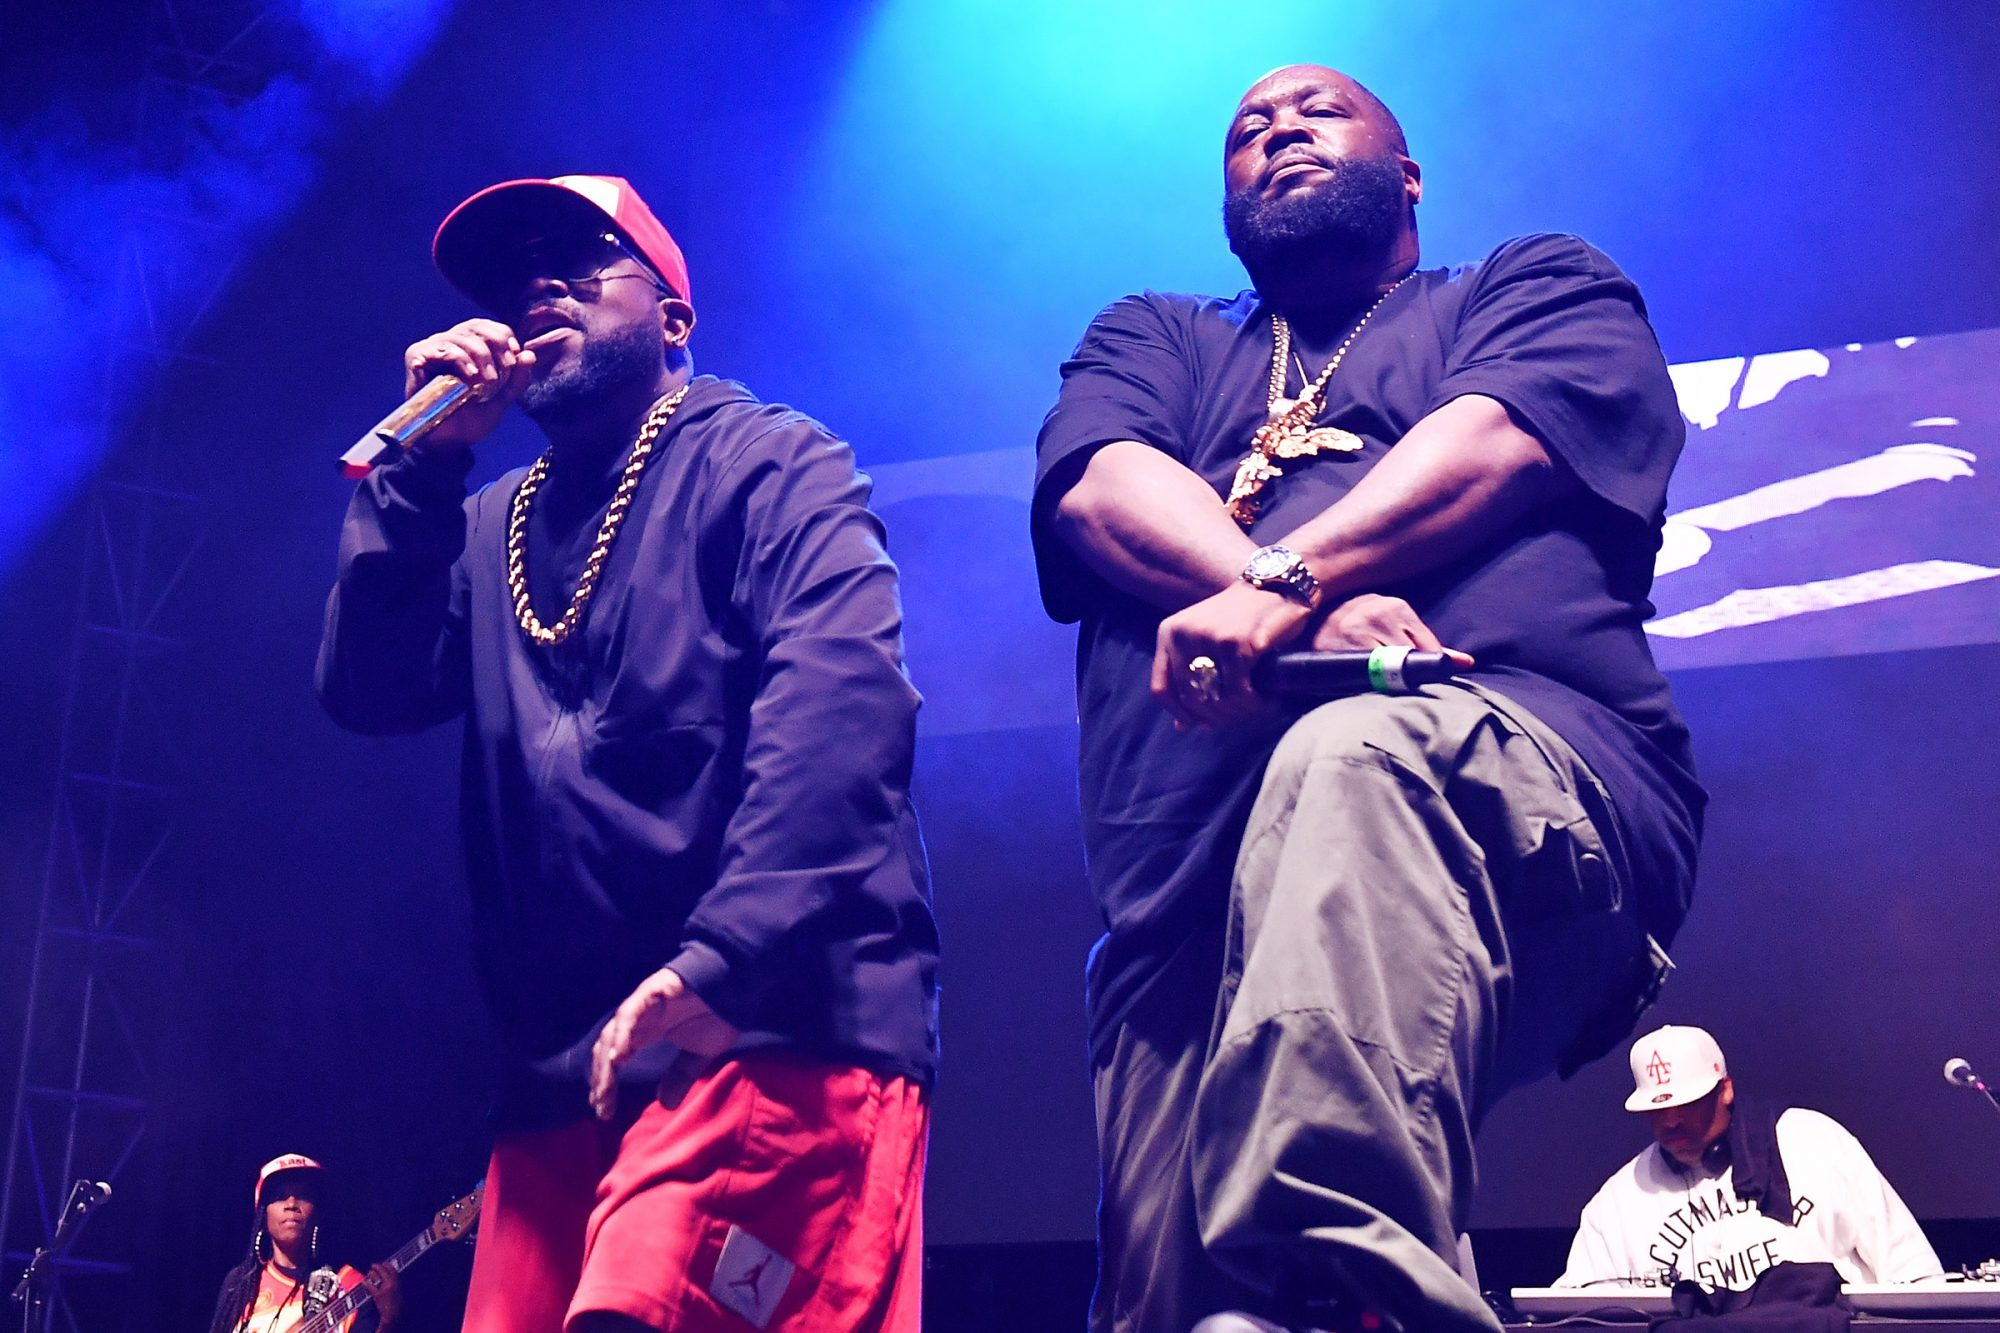 Big Boi and Killer Mike perform onstage during night 3 of Big Night Out ATL at Centennial Olympic Park on October 25, 2020 in Atlanta